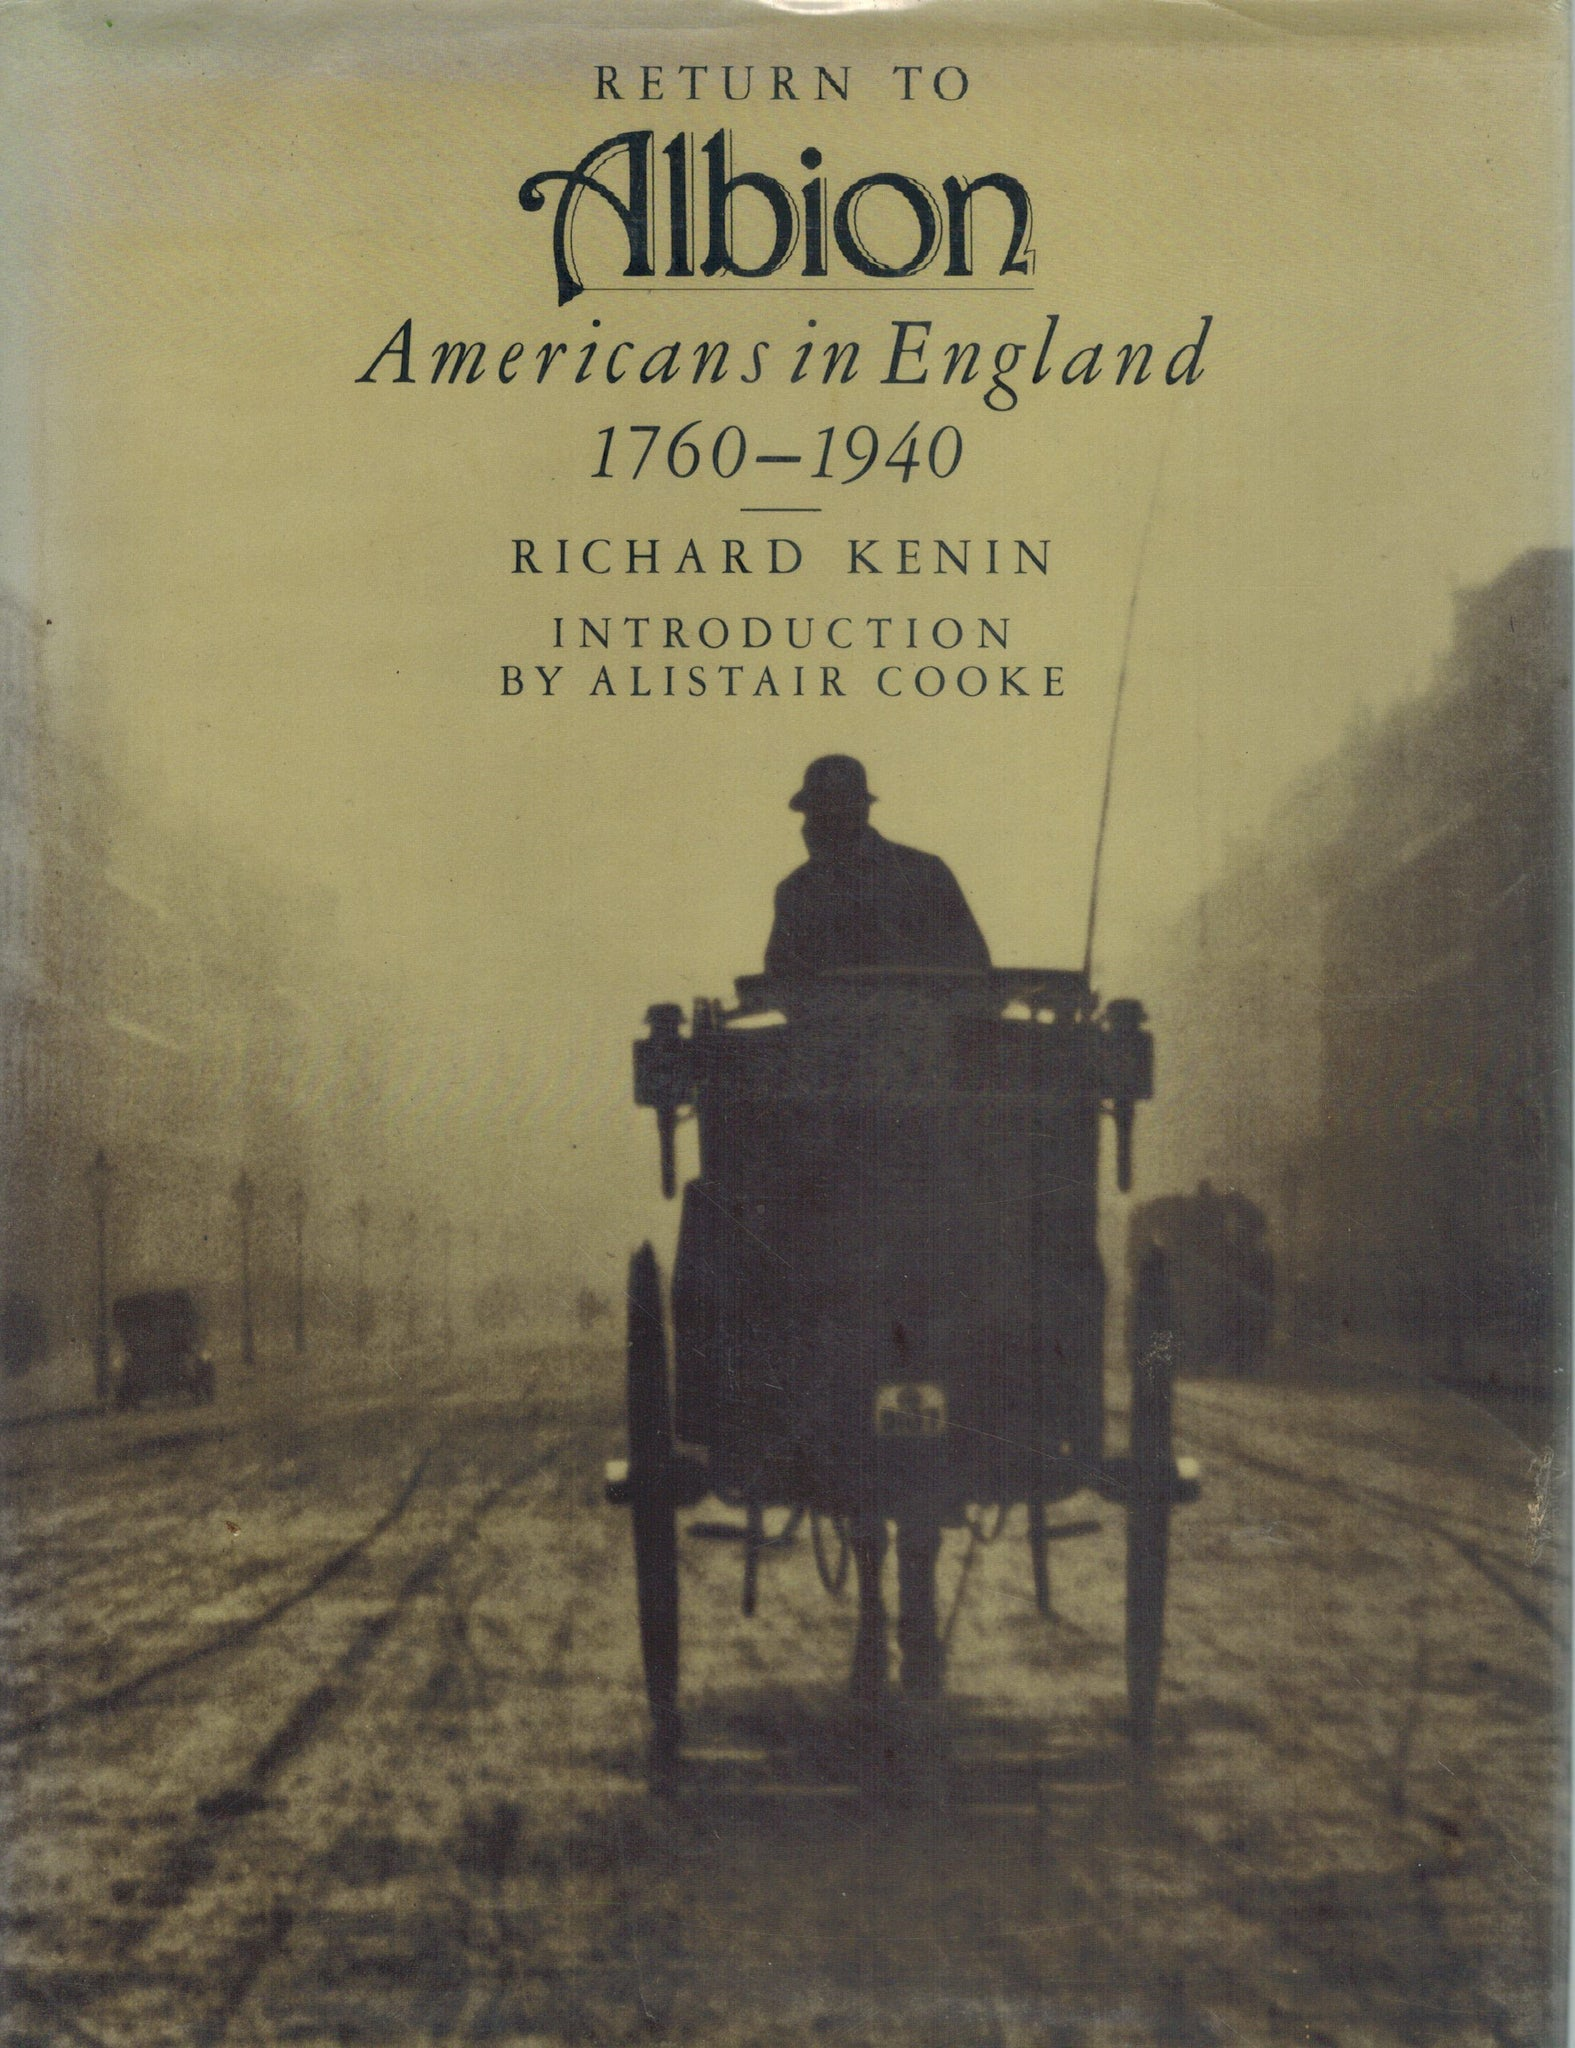 Return to Albion: Americans in England, 1760-1940 - books-new